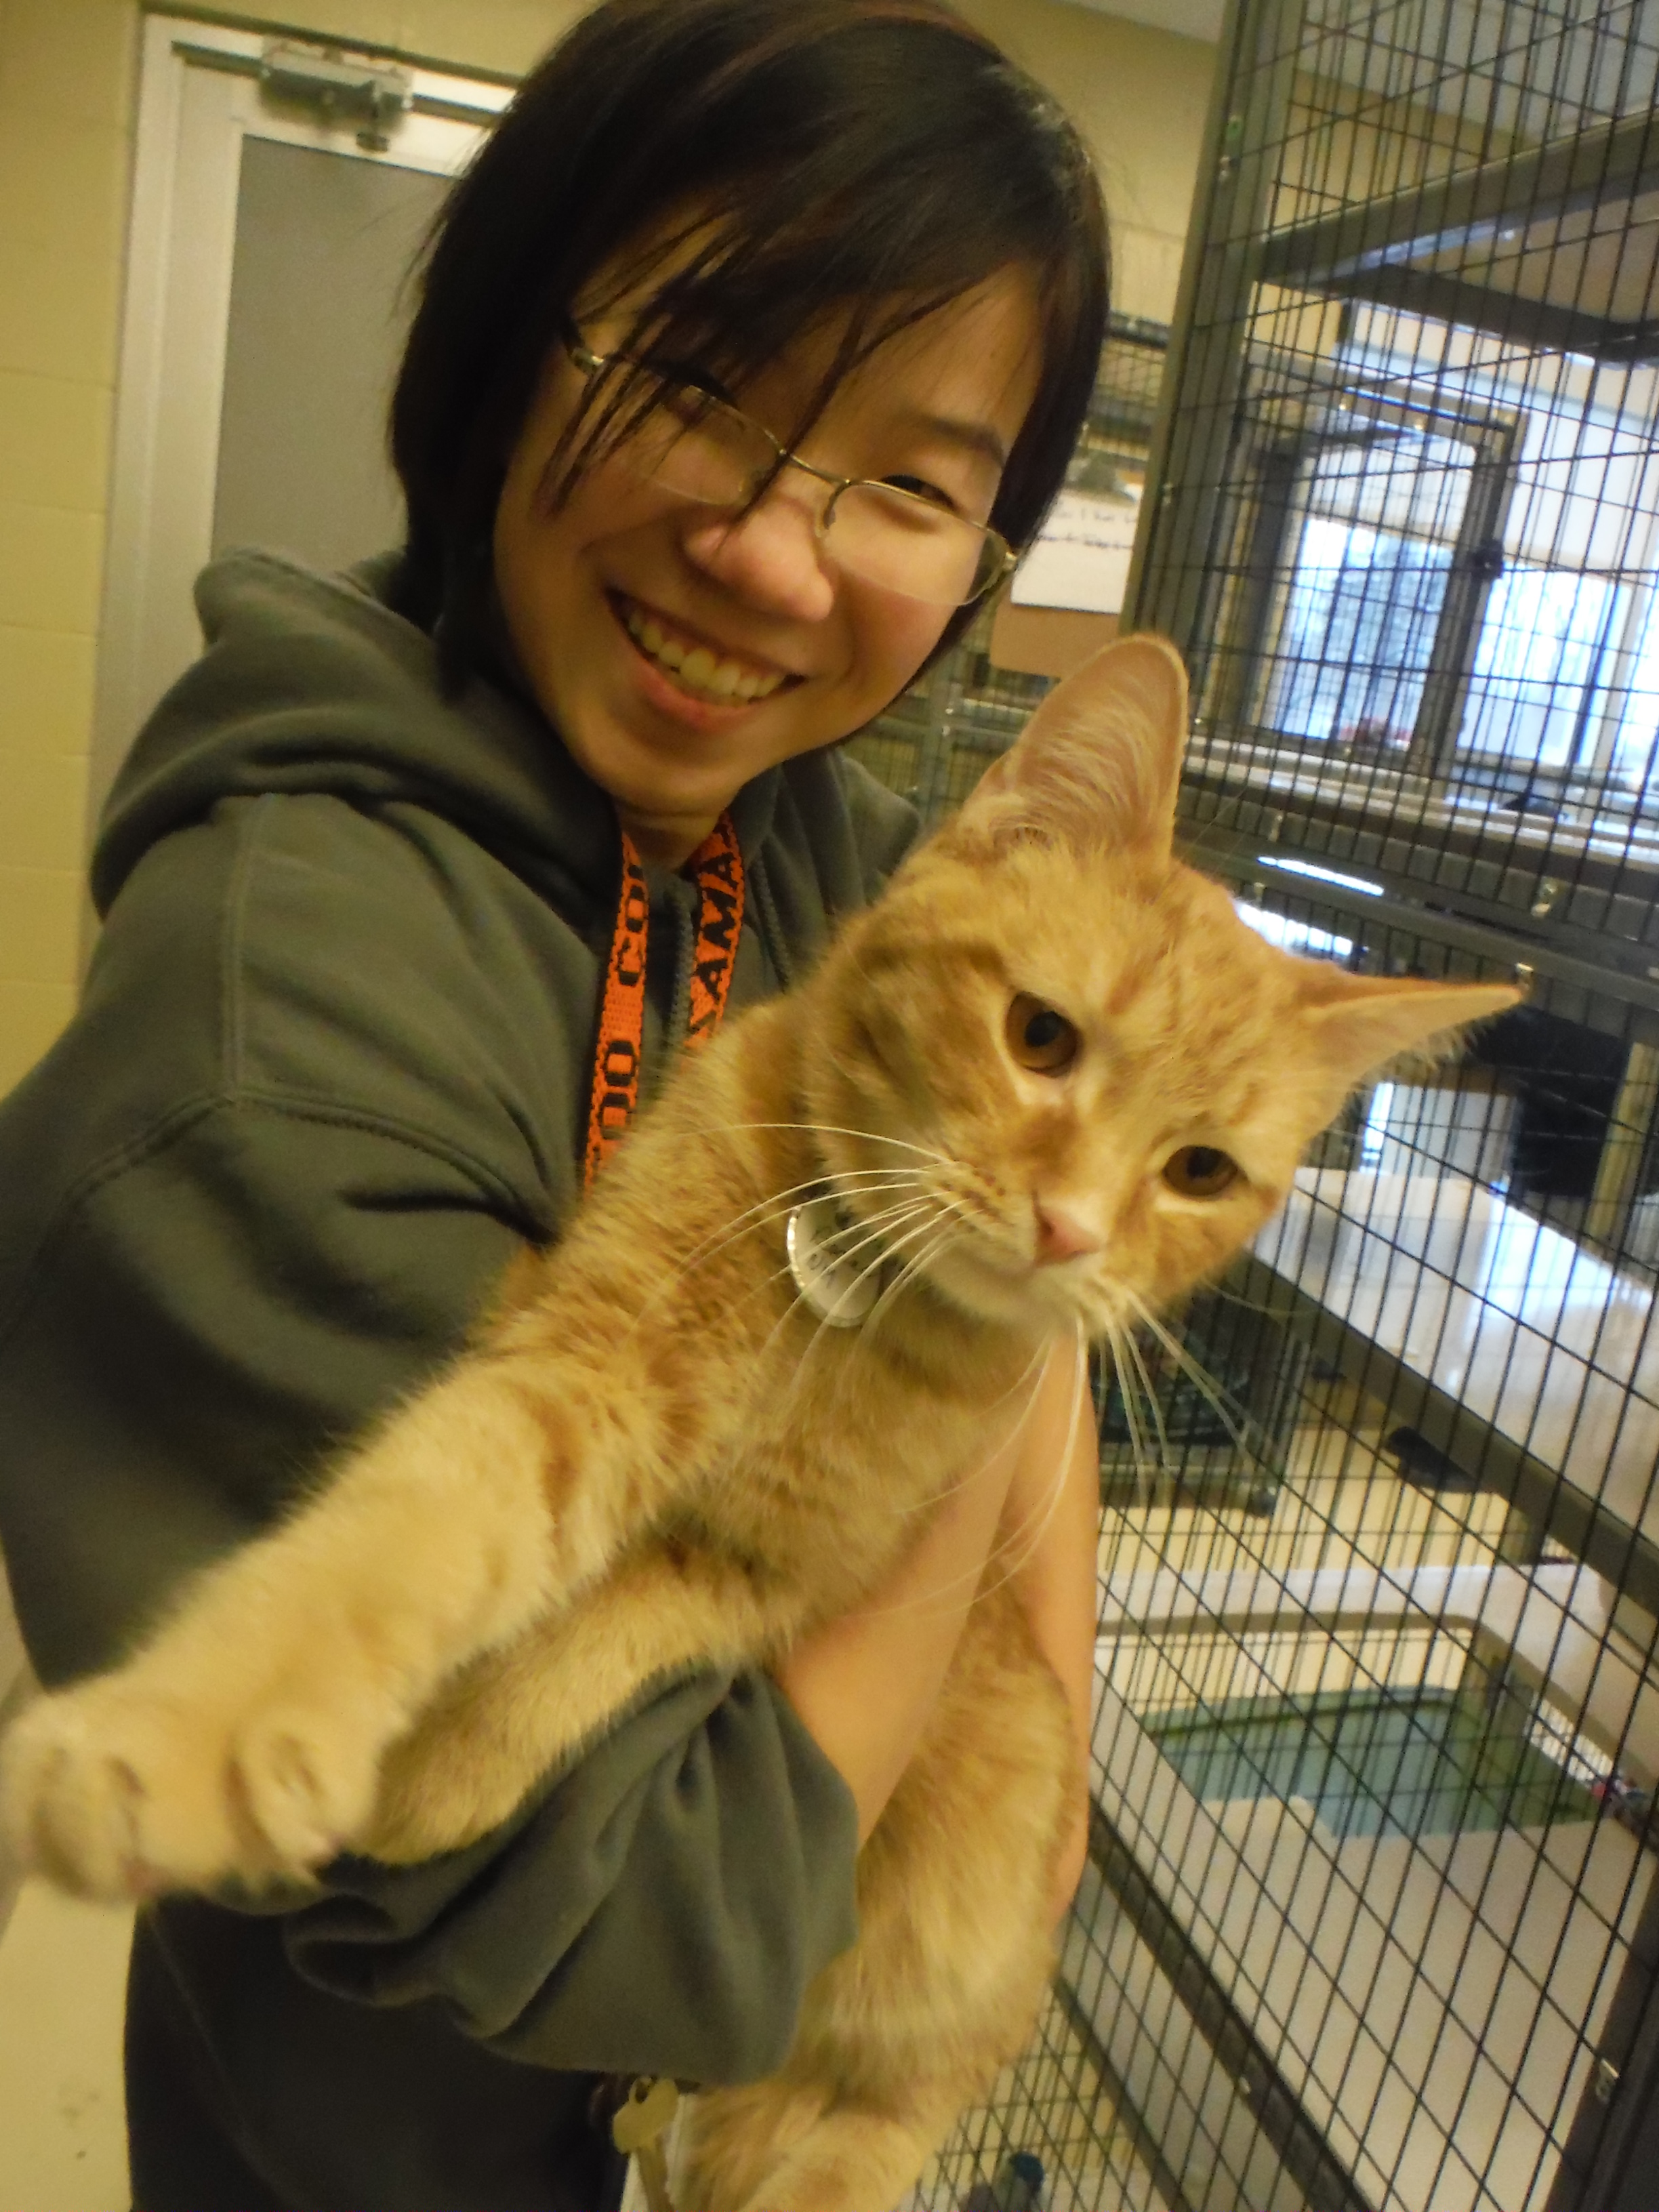 A student holding a cat at an animal shelter